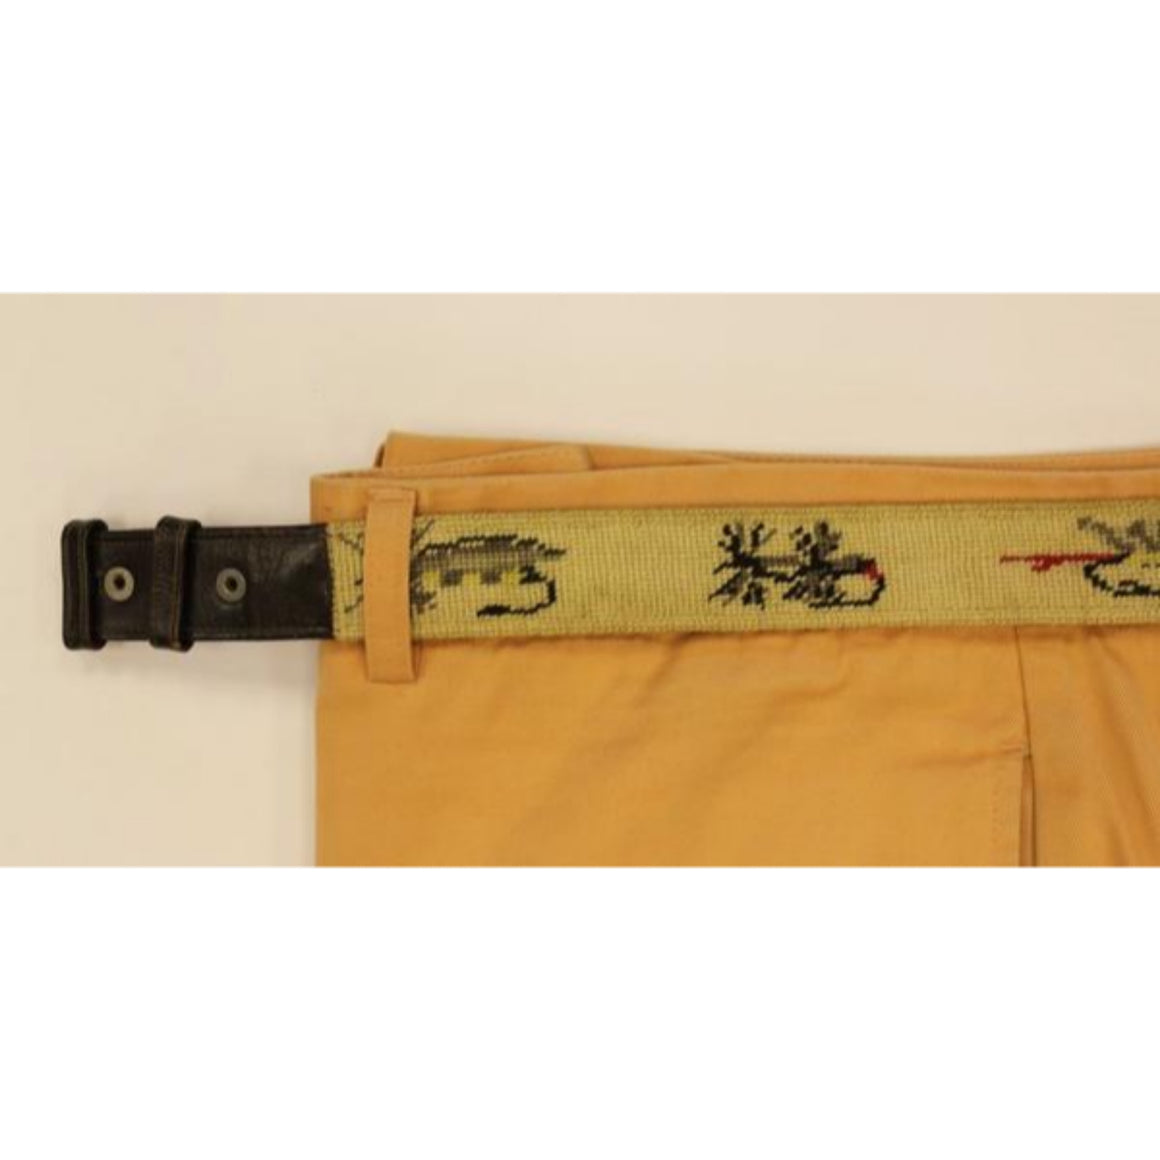 "'Trout Fly Hand-Needlepoint Belt' Sz: 35""W (No Buckle)"